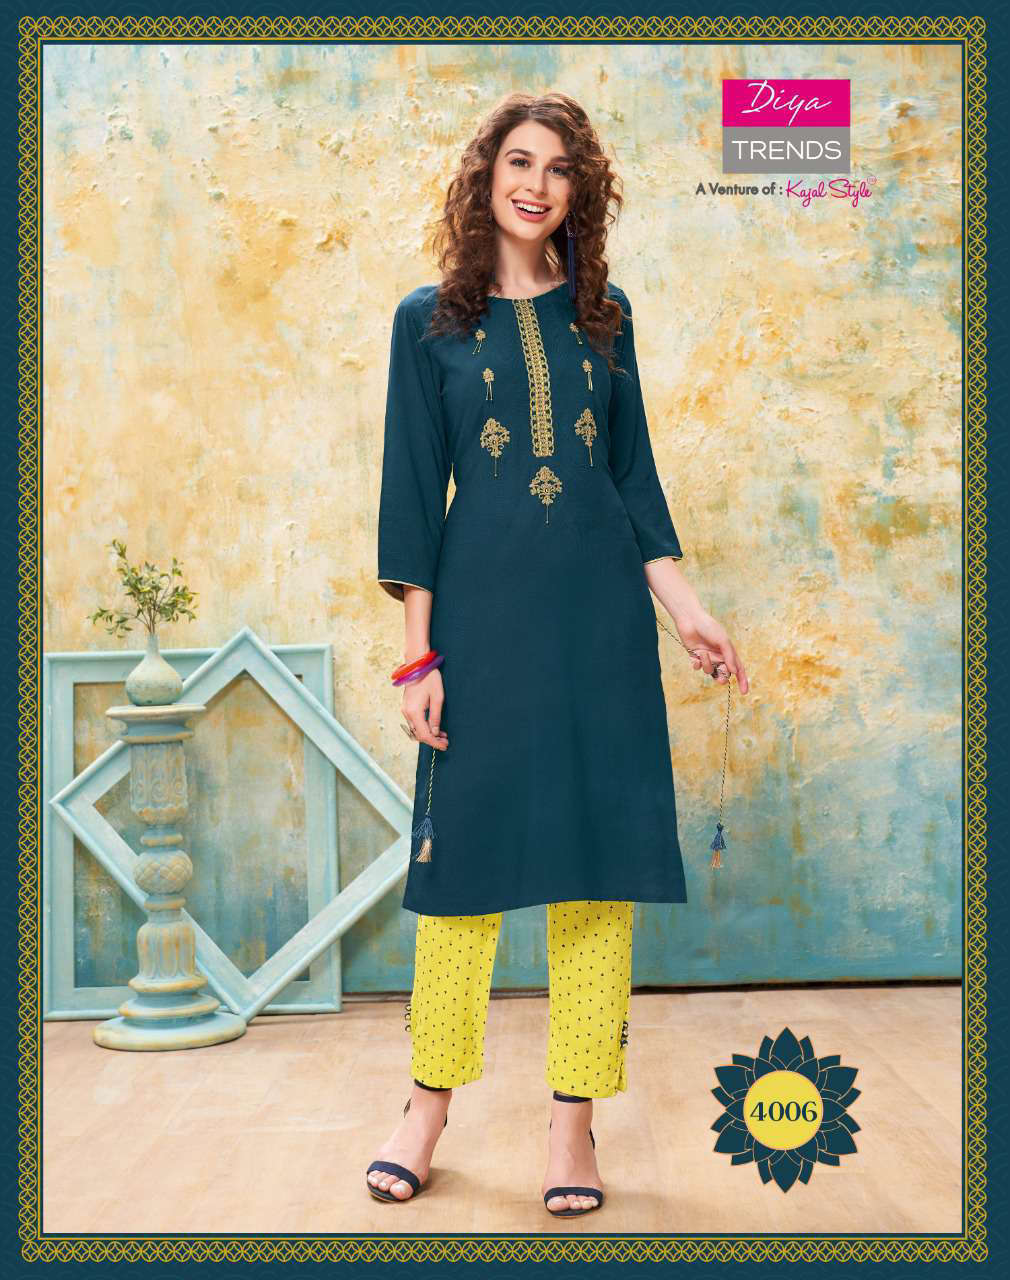 Diya Trends Forever Vol 4 by Kajal Style Kurti with Pant Wholesale Catalog 12 Pcs 7 - Diya Trends Forever Vol 4 by Kajal Style Kurti with Pant Wholesale Catalog 12 Pcs